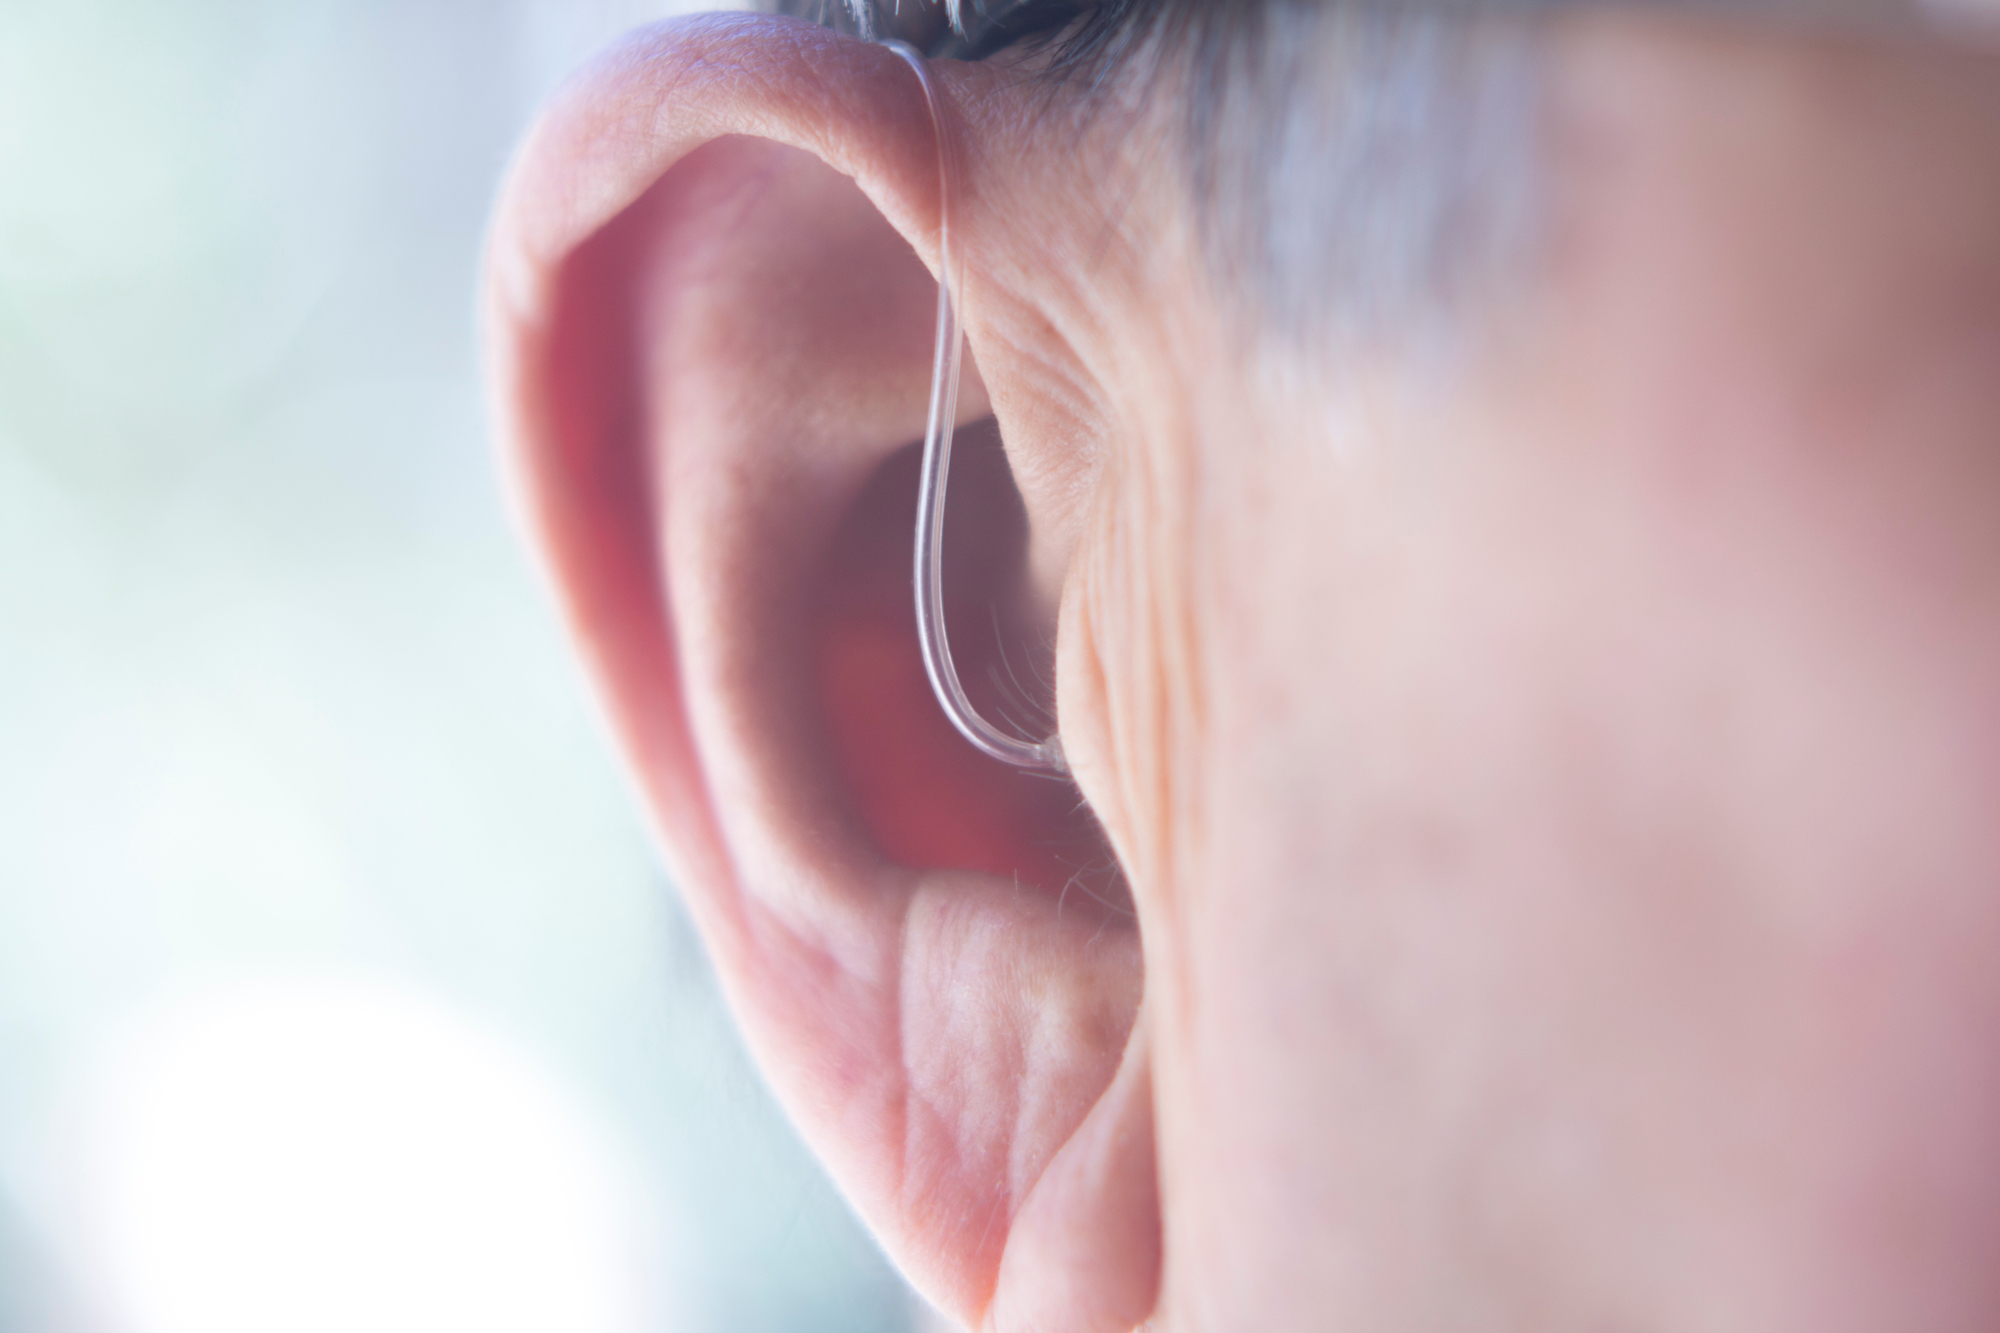 closeup photo of ear of elderly man with hearing aid inserted